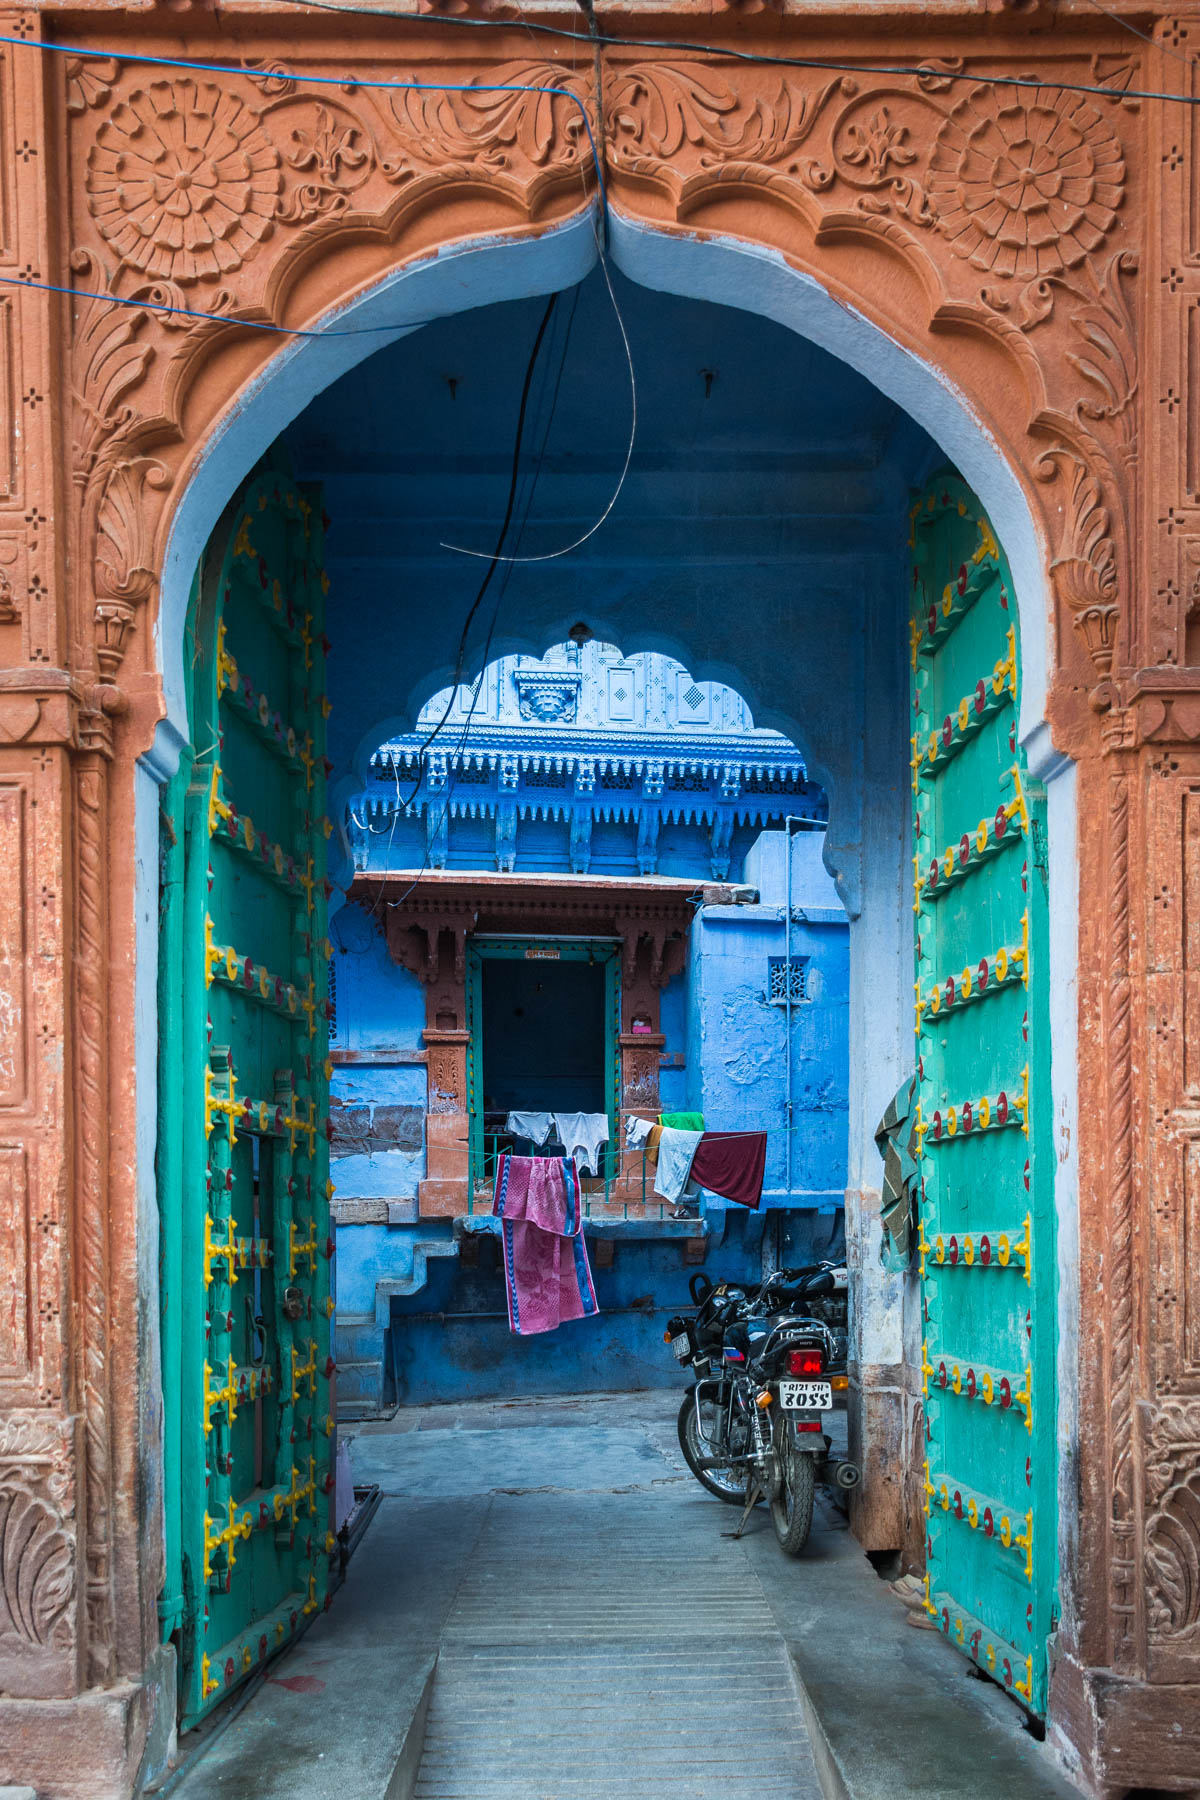 A blue house and beautifully detailed archway and door in Jodhpur, Rajasthan, India